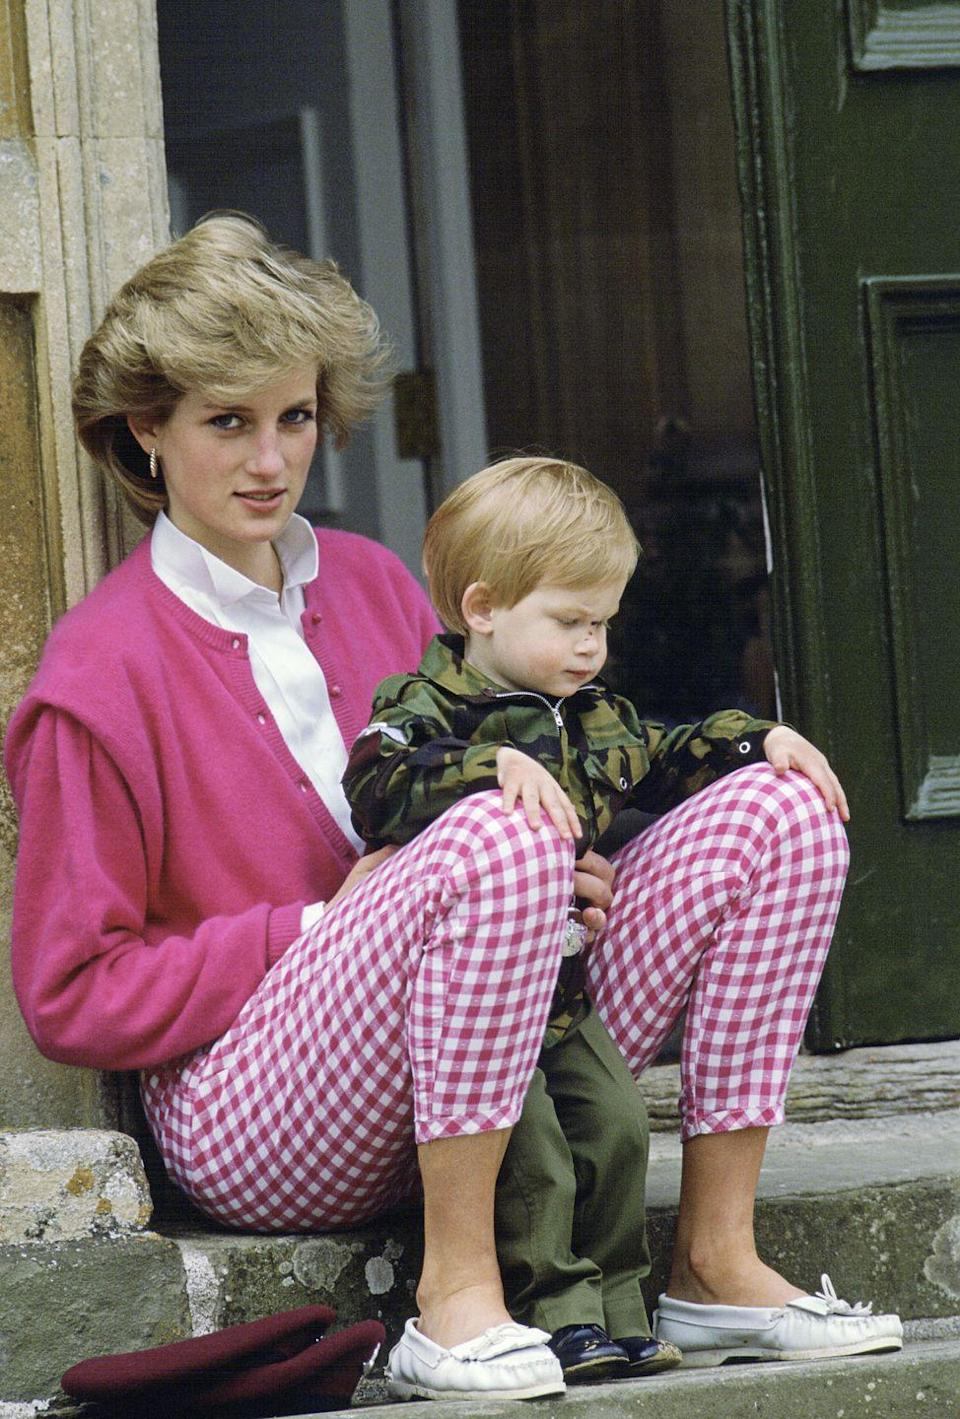 <p>Another vote in favor of pink plaid? This classic look Diana wore while playing with Prince Harry at Highgrove in 1986.</p>